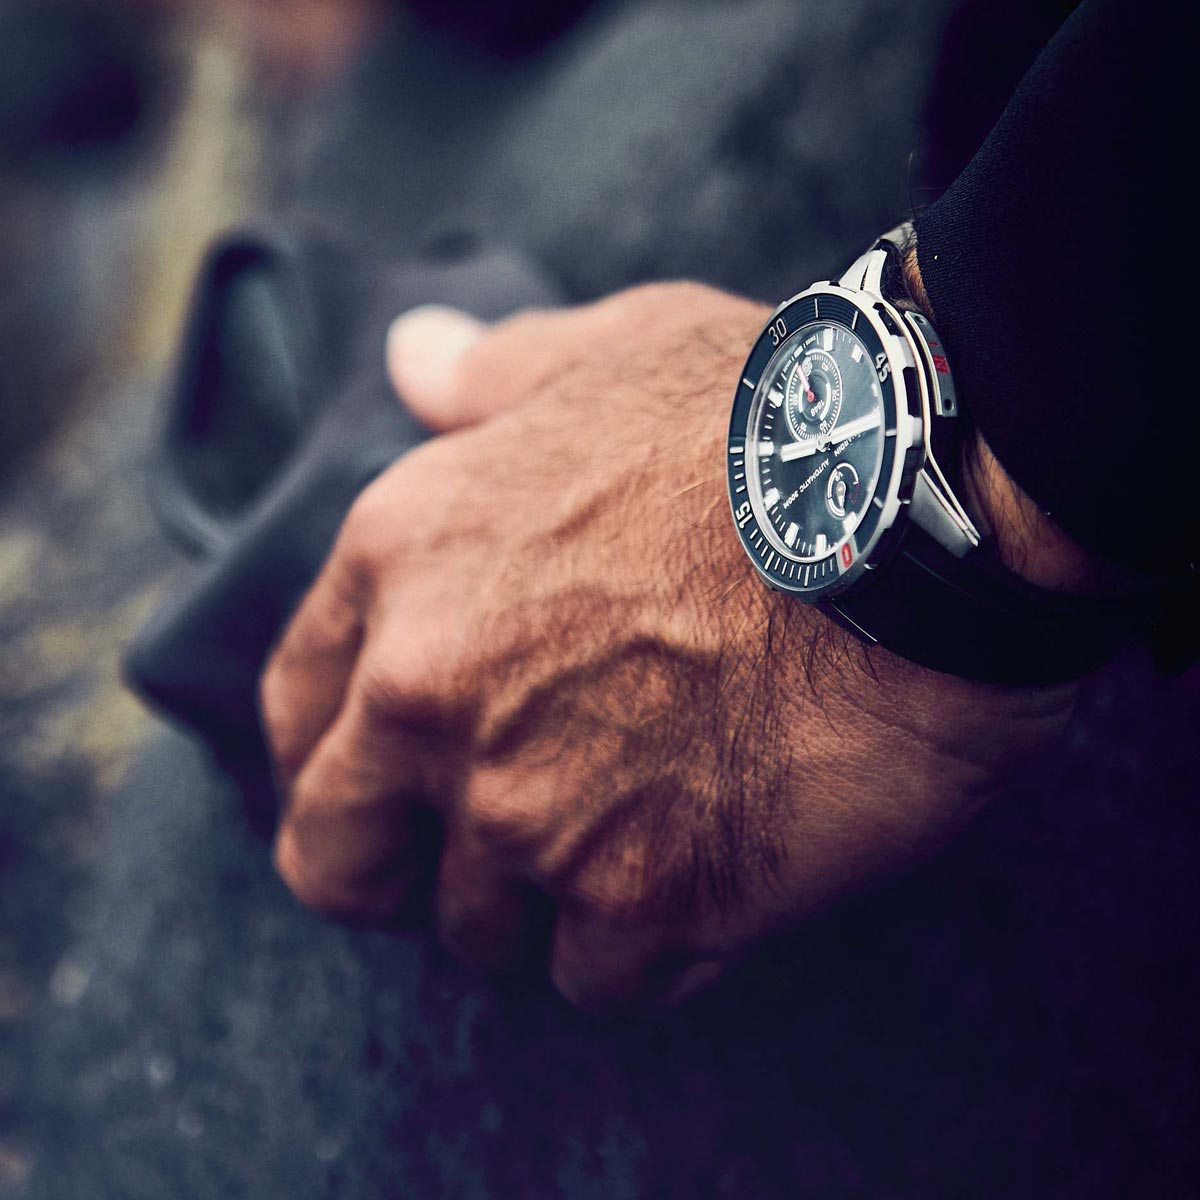 La Cote des Montres : Photo - Ulysse Nardin nouvelle collection Diver Chronometer